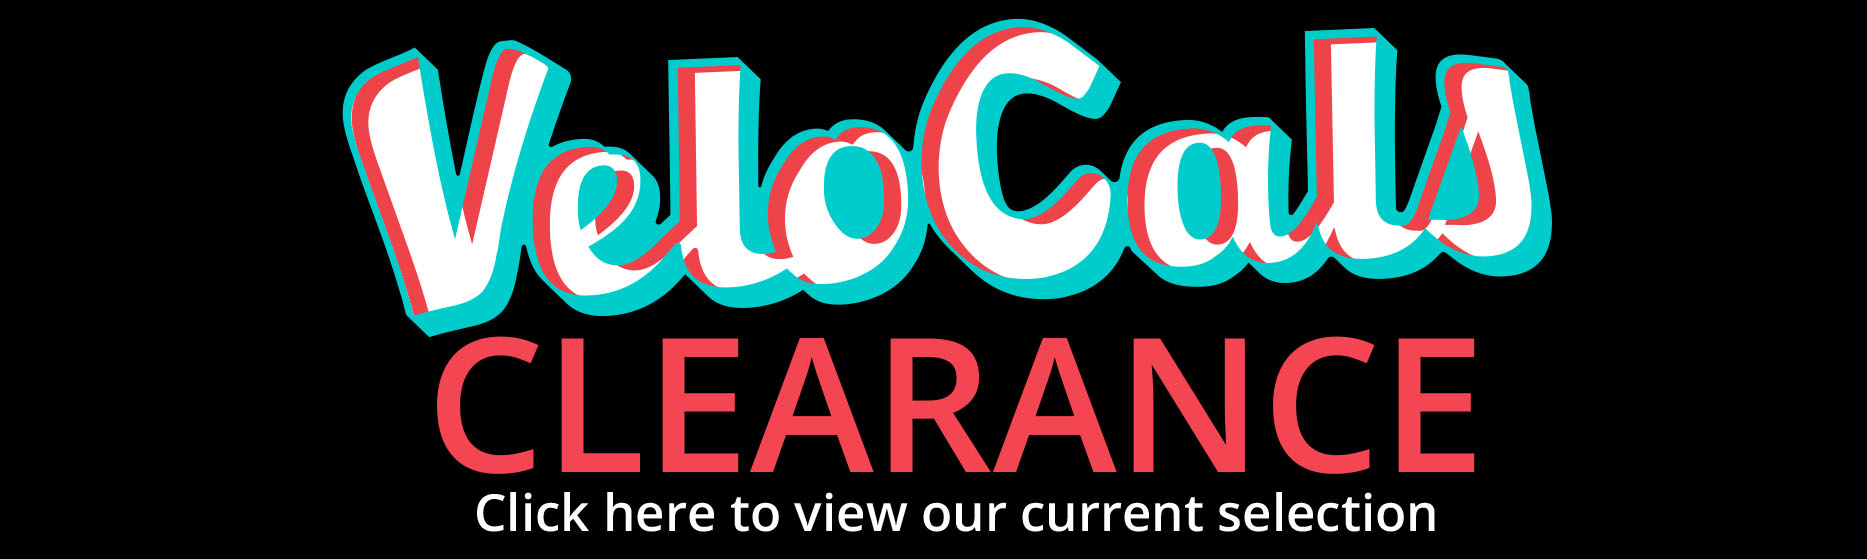 Shop clearance now